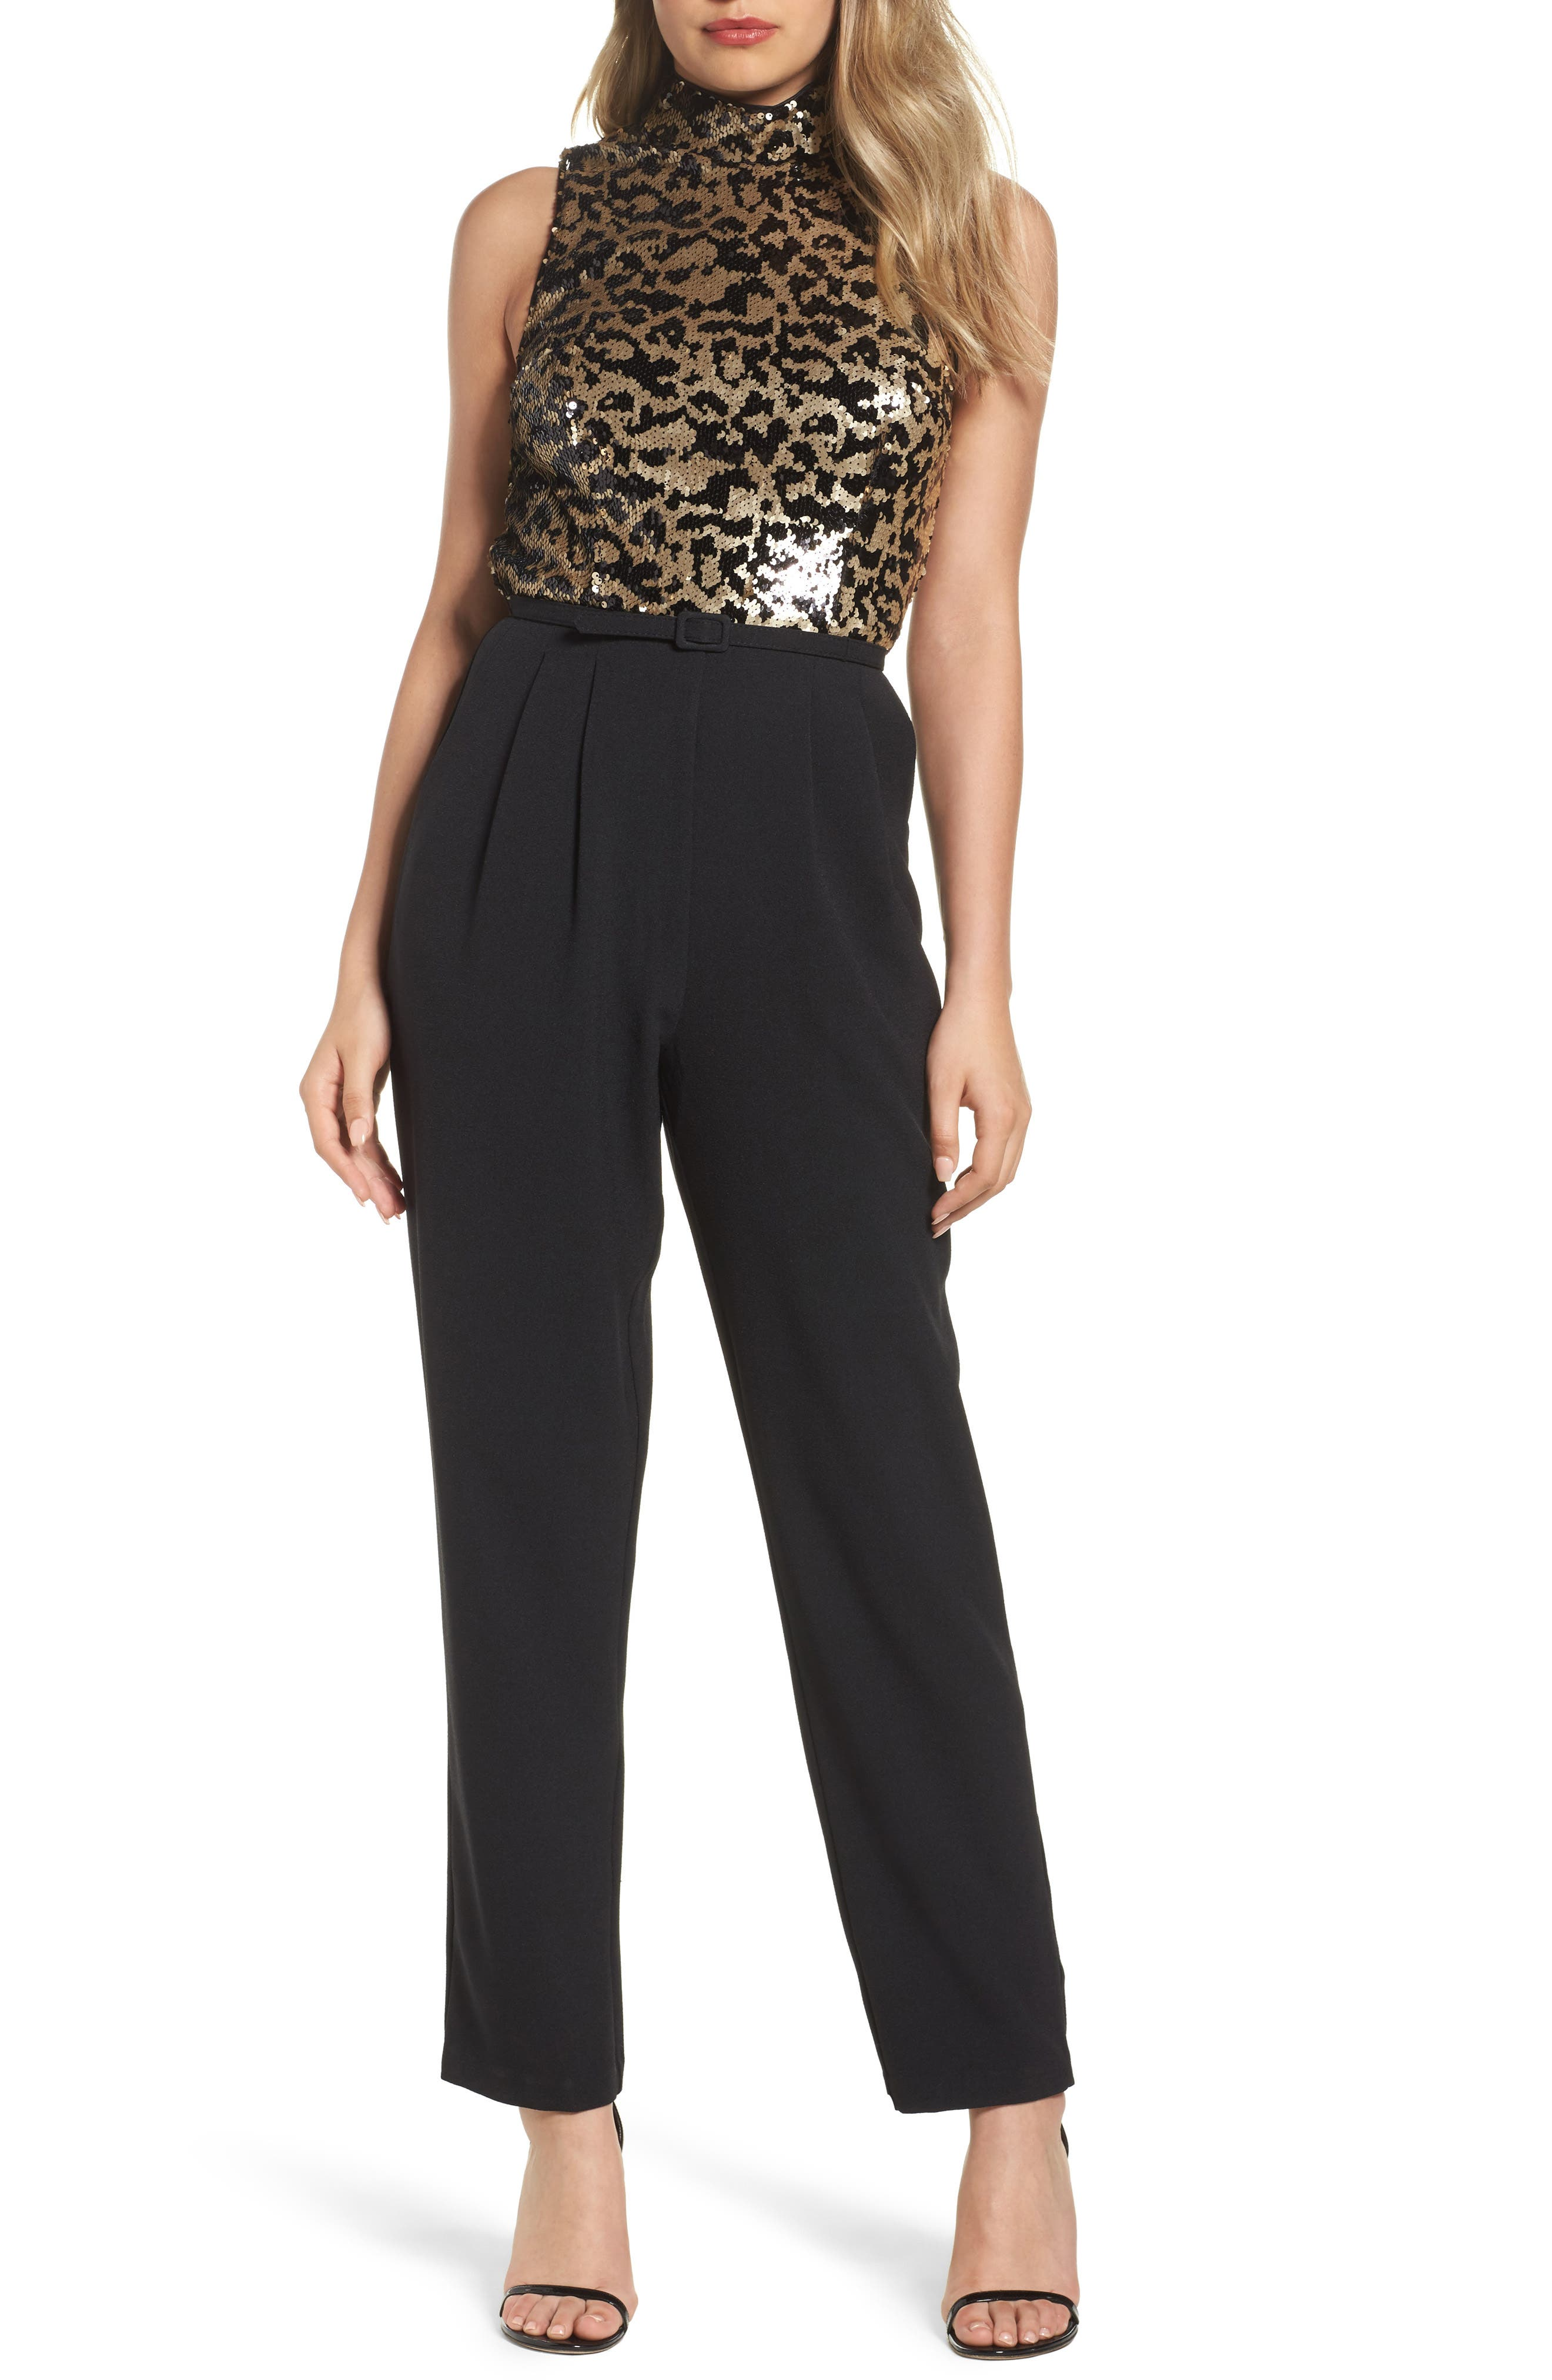 Alternate Image 1 Selected - Vince Camuto Sequin Leopard Bodice Belted Jumpsuit